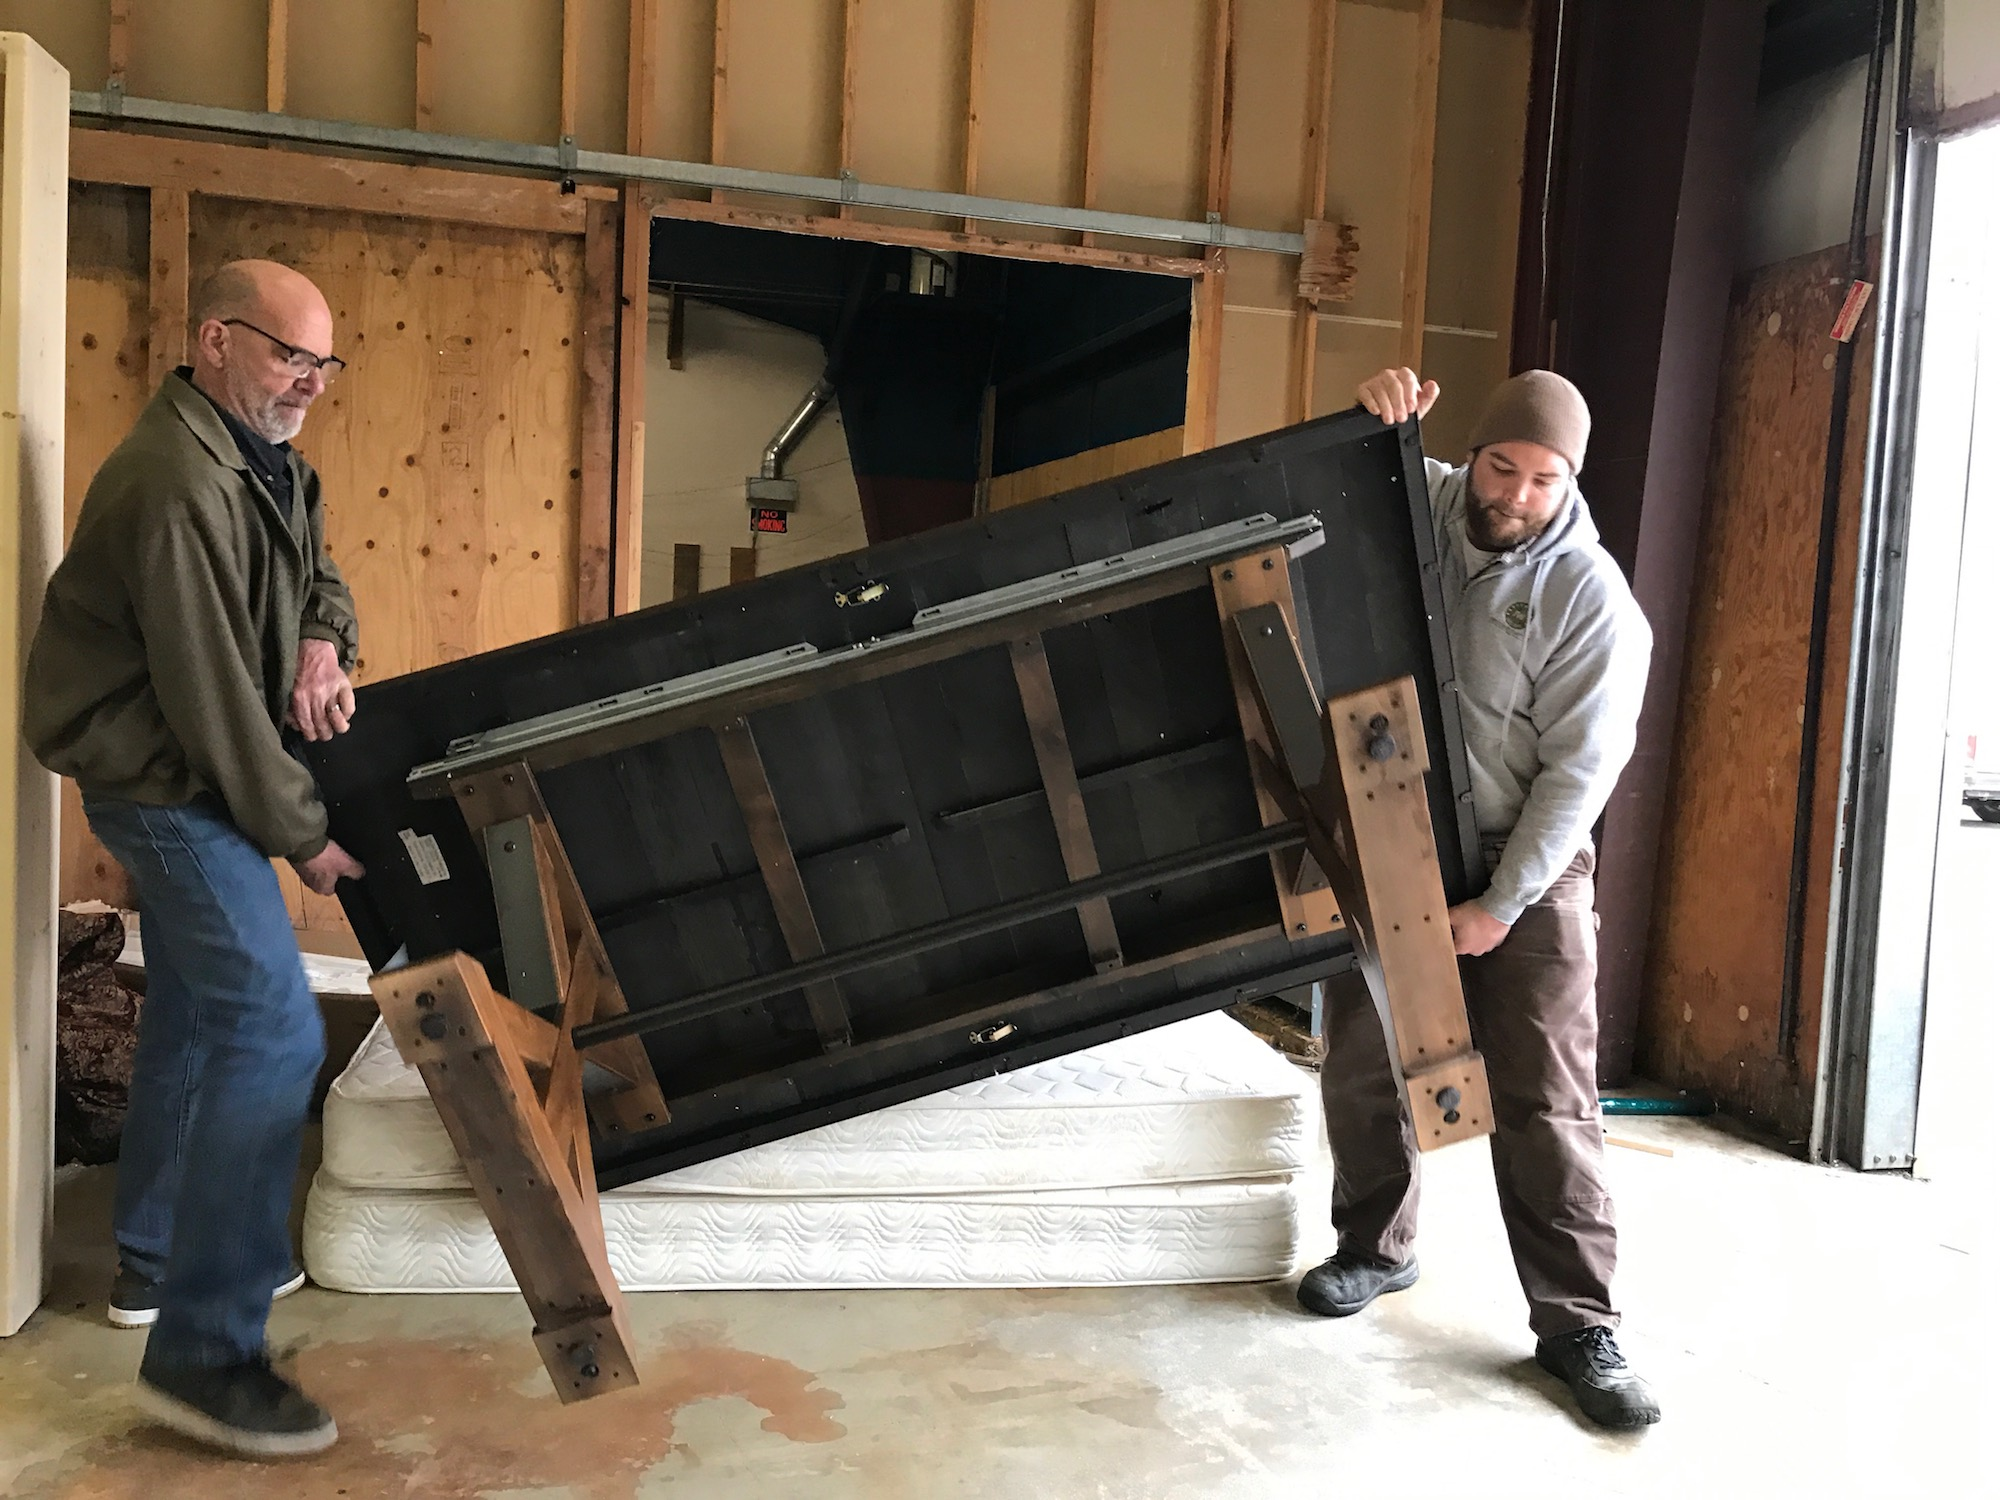 ... Selection of Furniture for Your Whole House. Tom Nelson with son Nick & Nelson\u0027s Furniture Company Offers Wide Selection of Furniture for ...